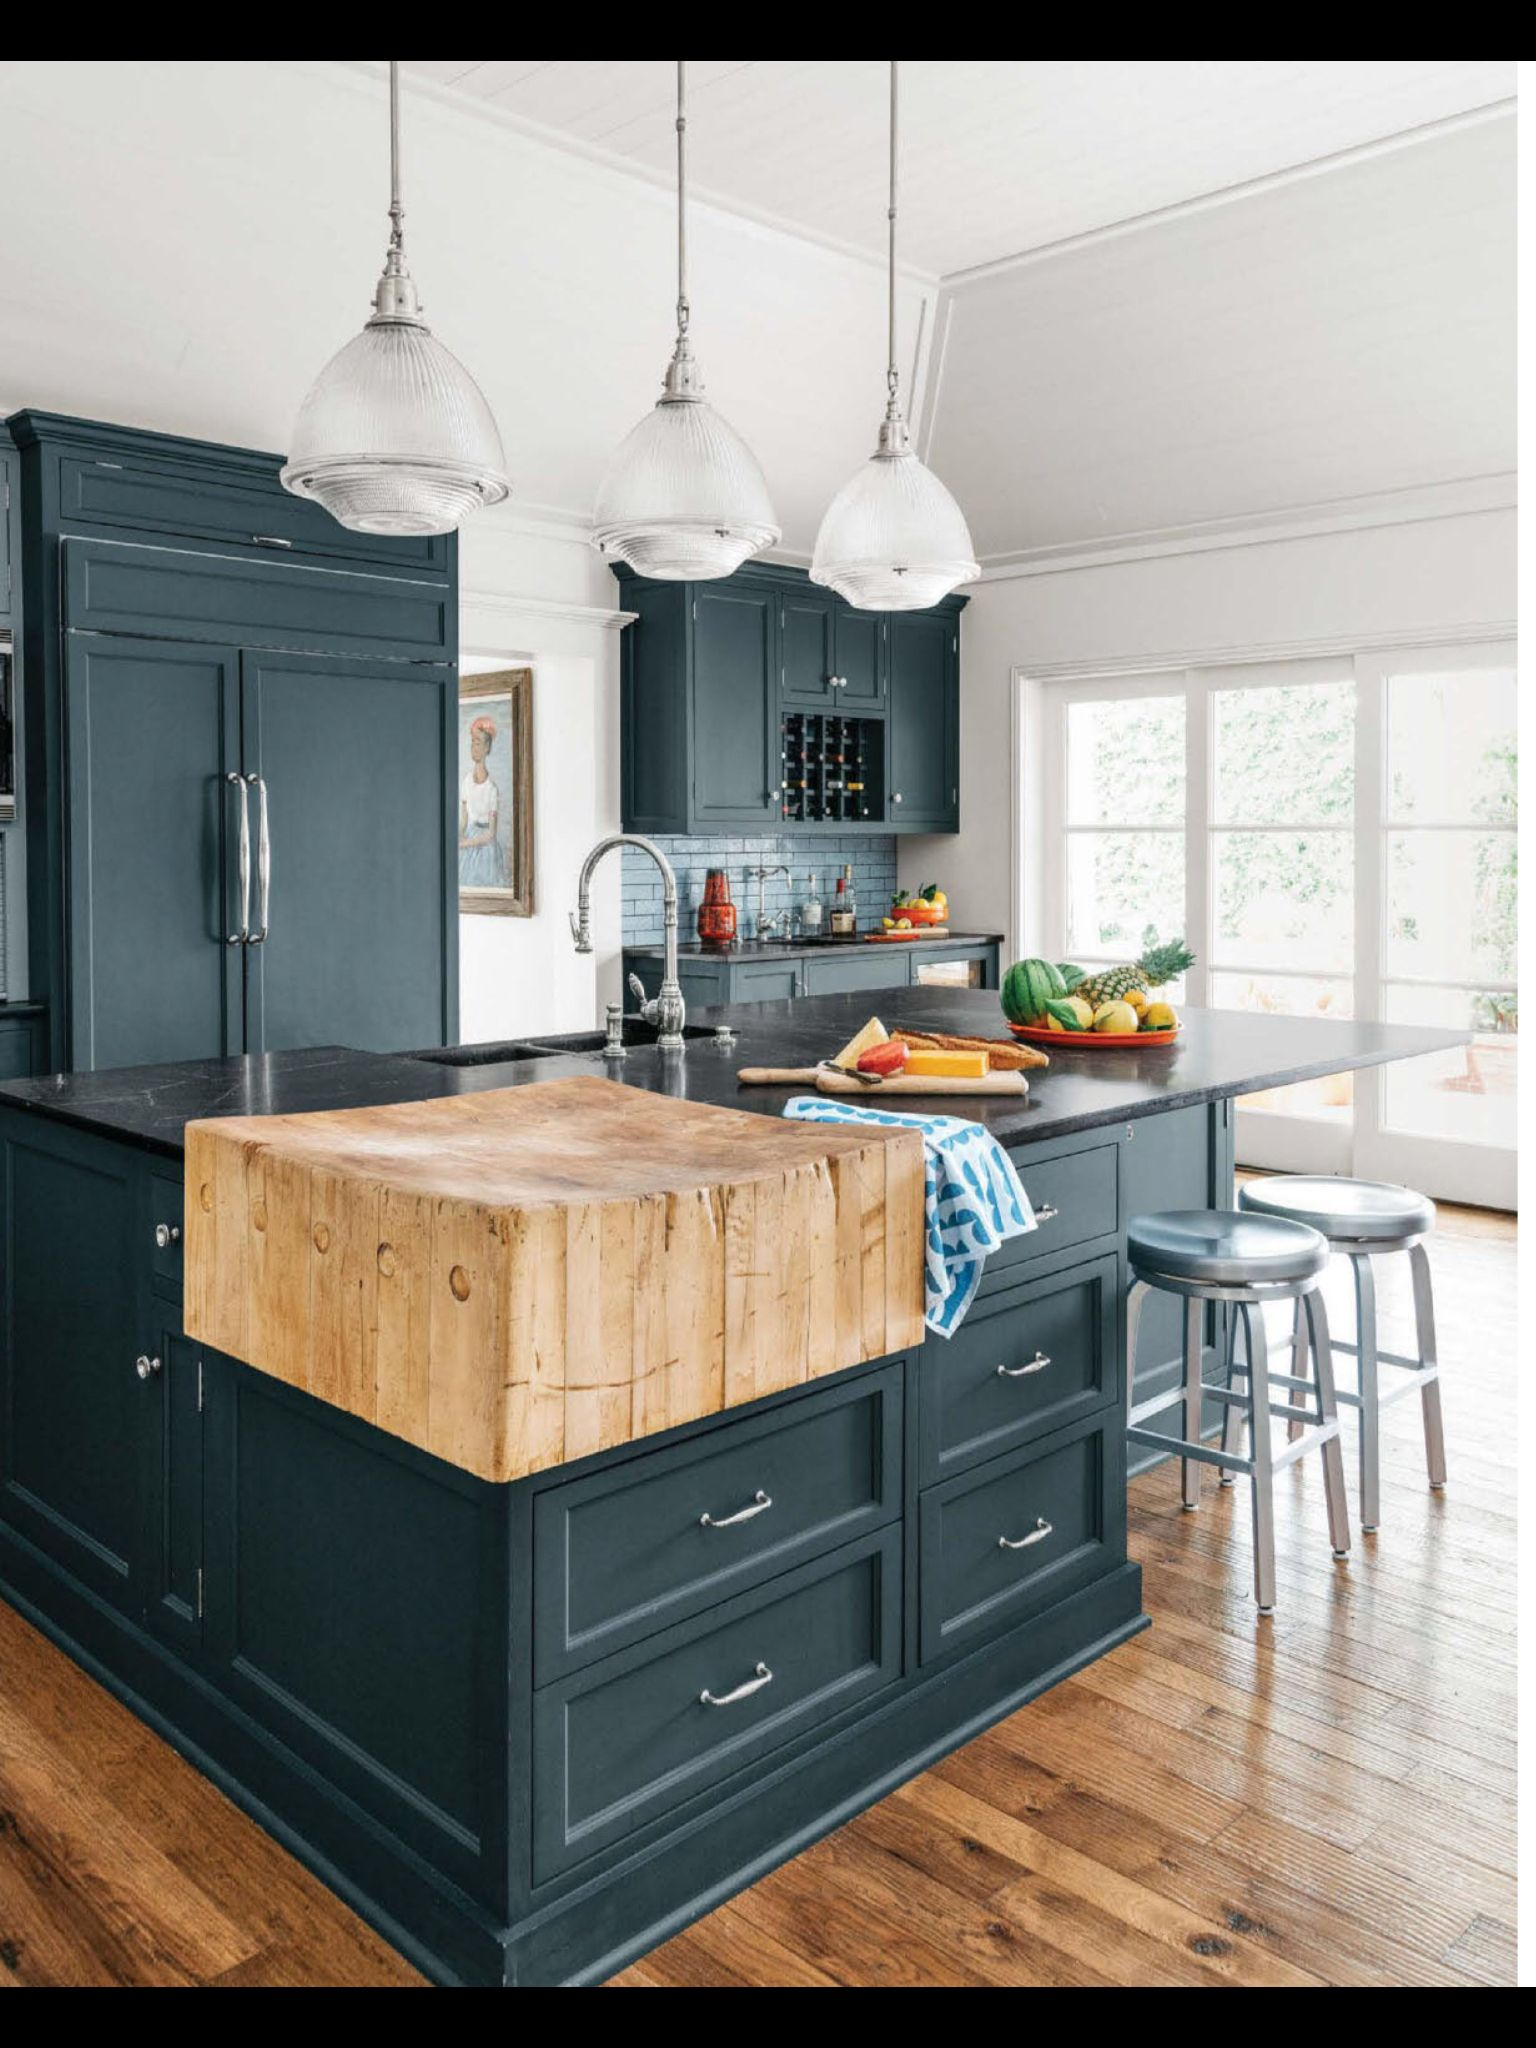 L A Story From This Old House September 2018 Read It On The Texture App Unlimited Access To 200 Top Maga Kitchen Style Kitchen Remodel Kitchen Renovation